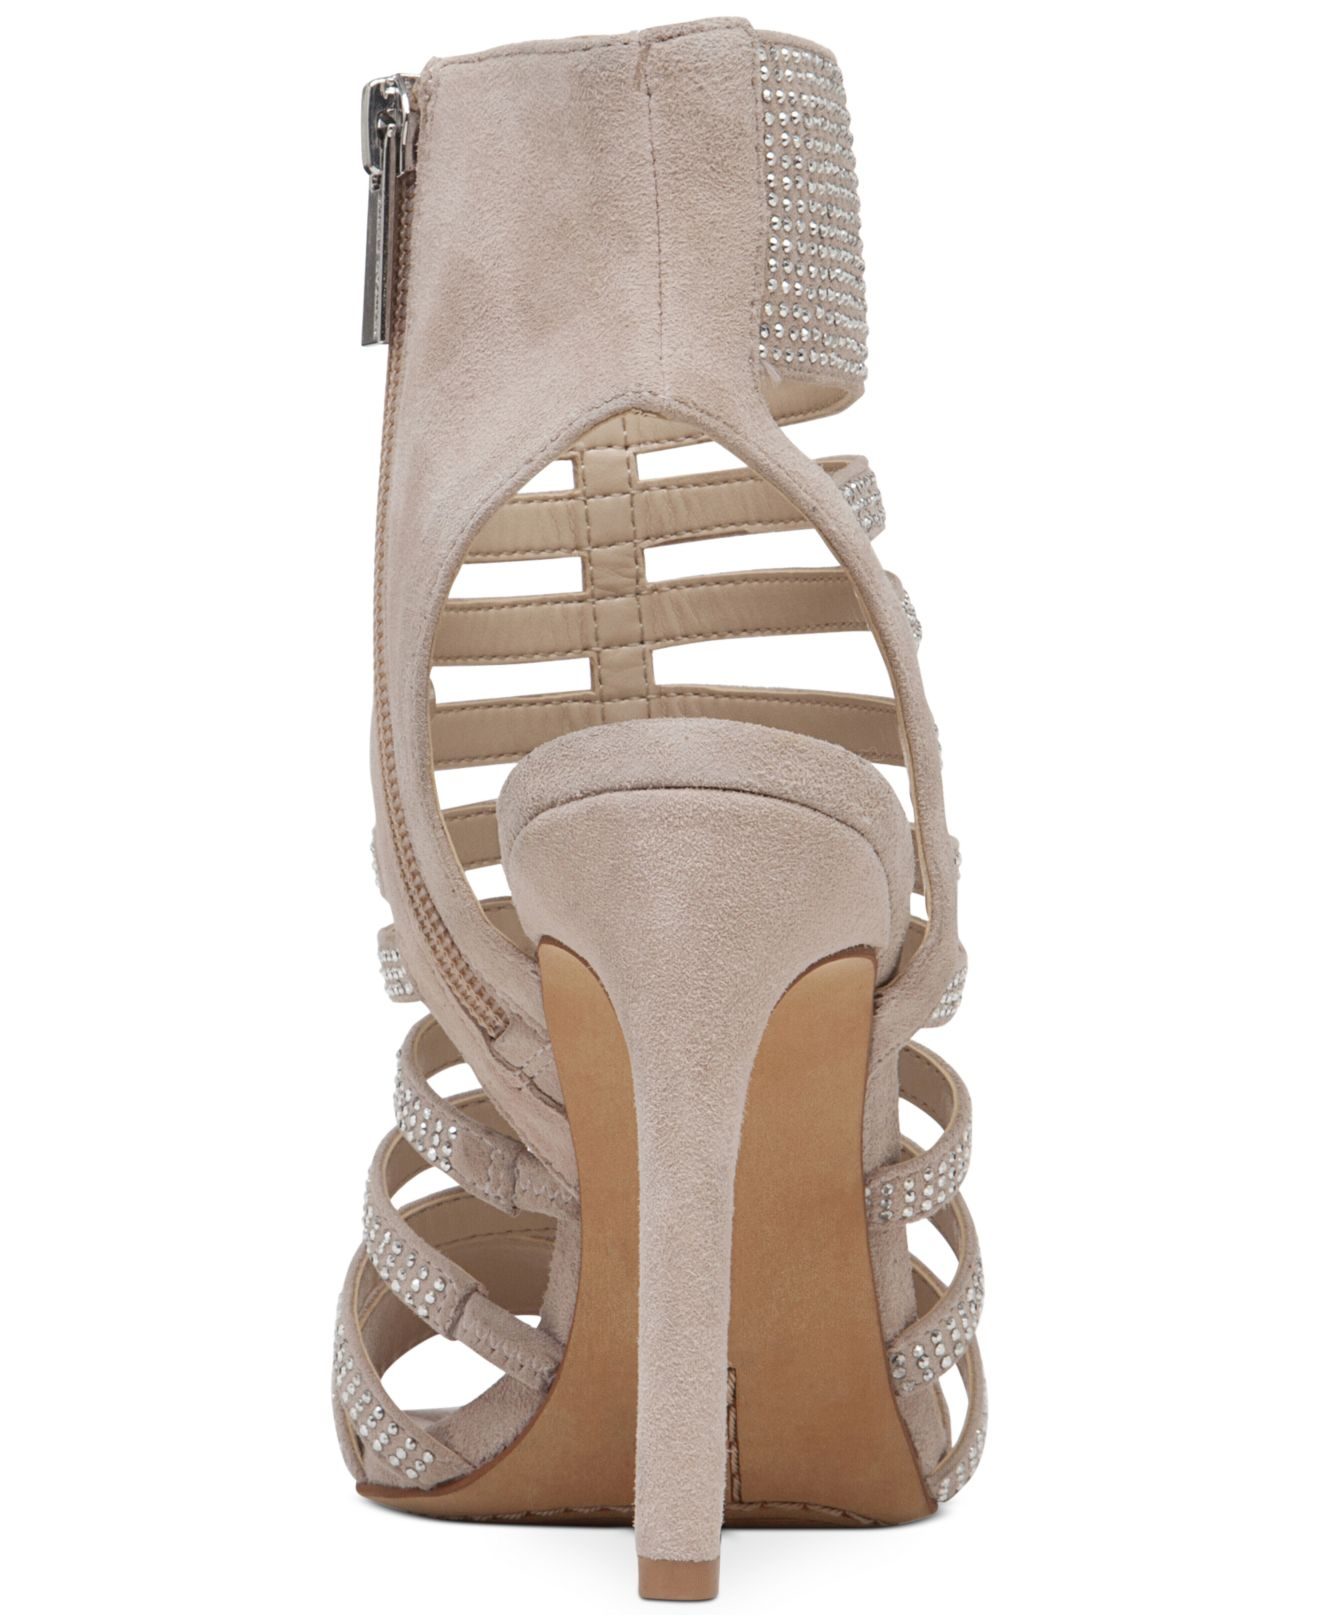 Vince Camuto Katal Gladiator Evening Sandals In Natural Lyst